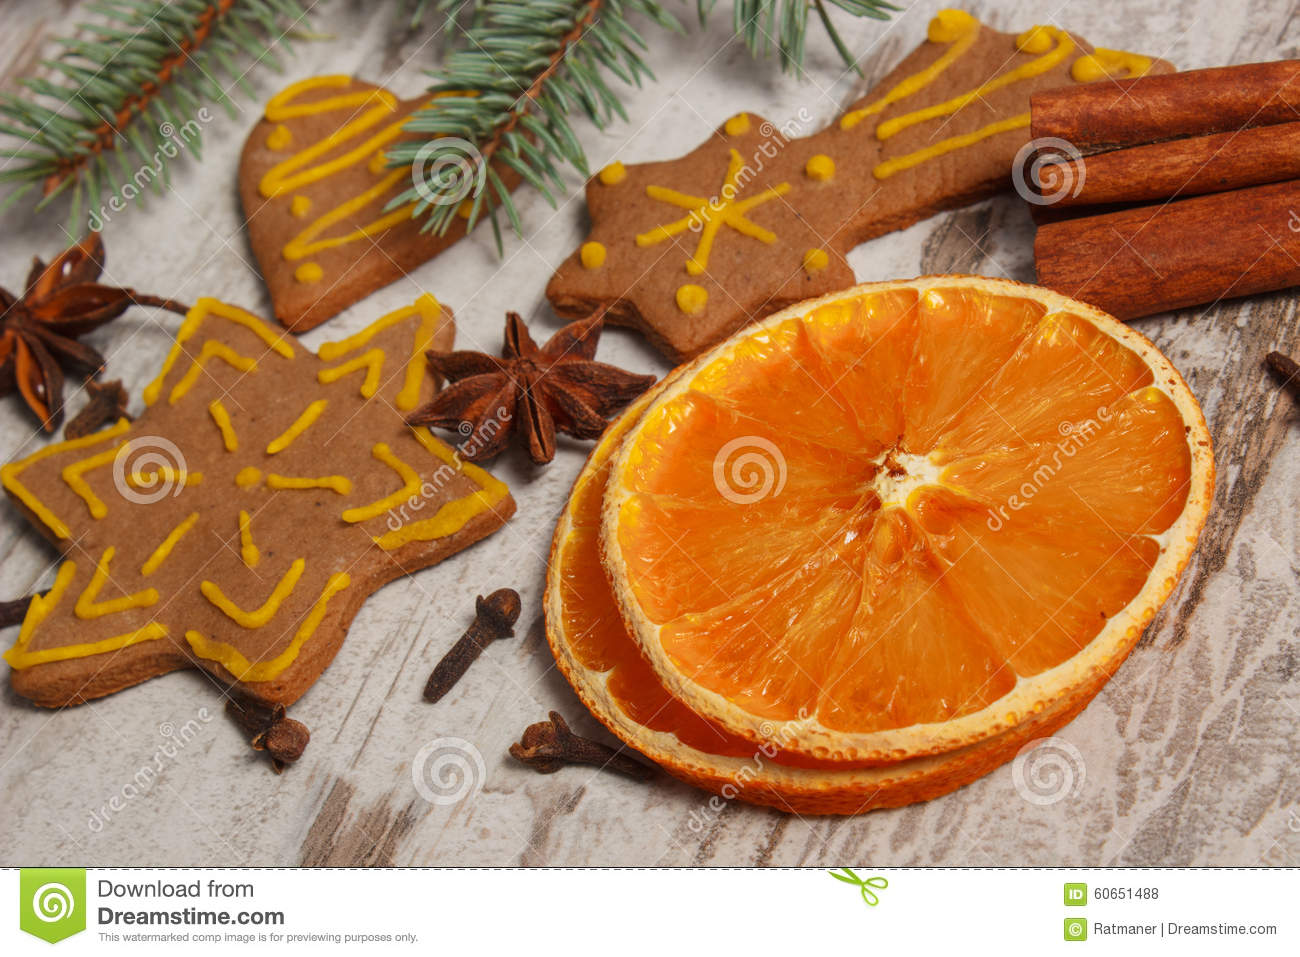 dried orange spices and decorated gingerbread on old